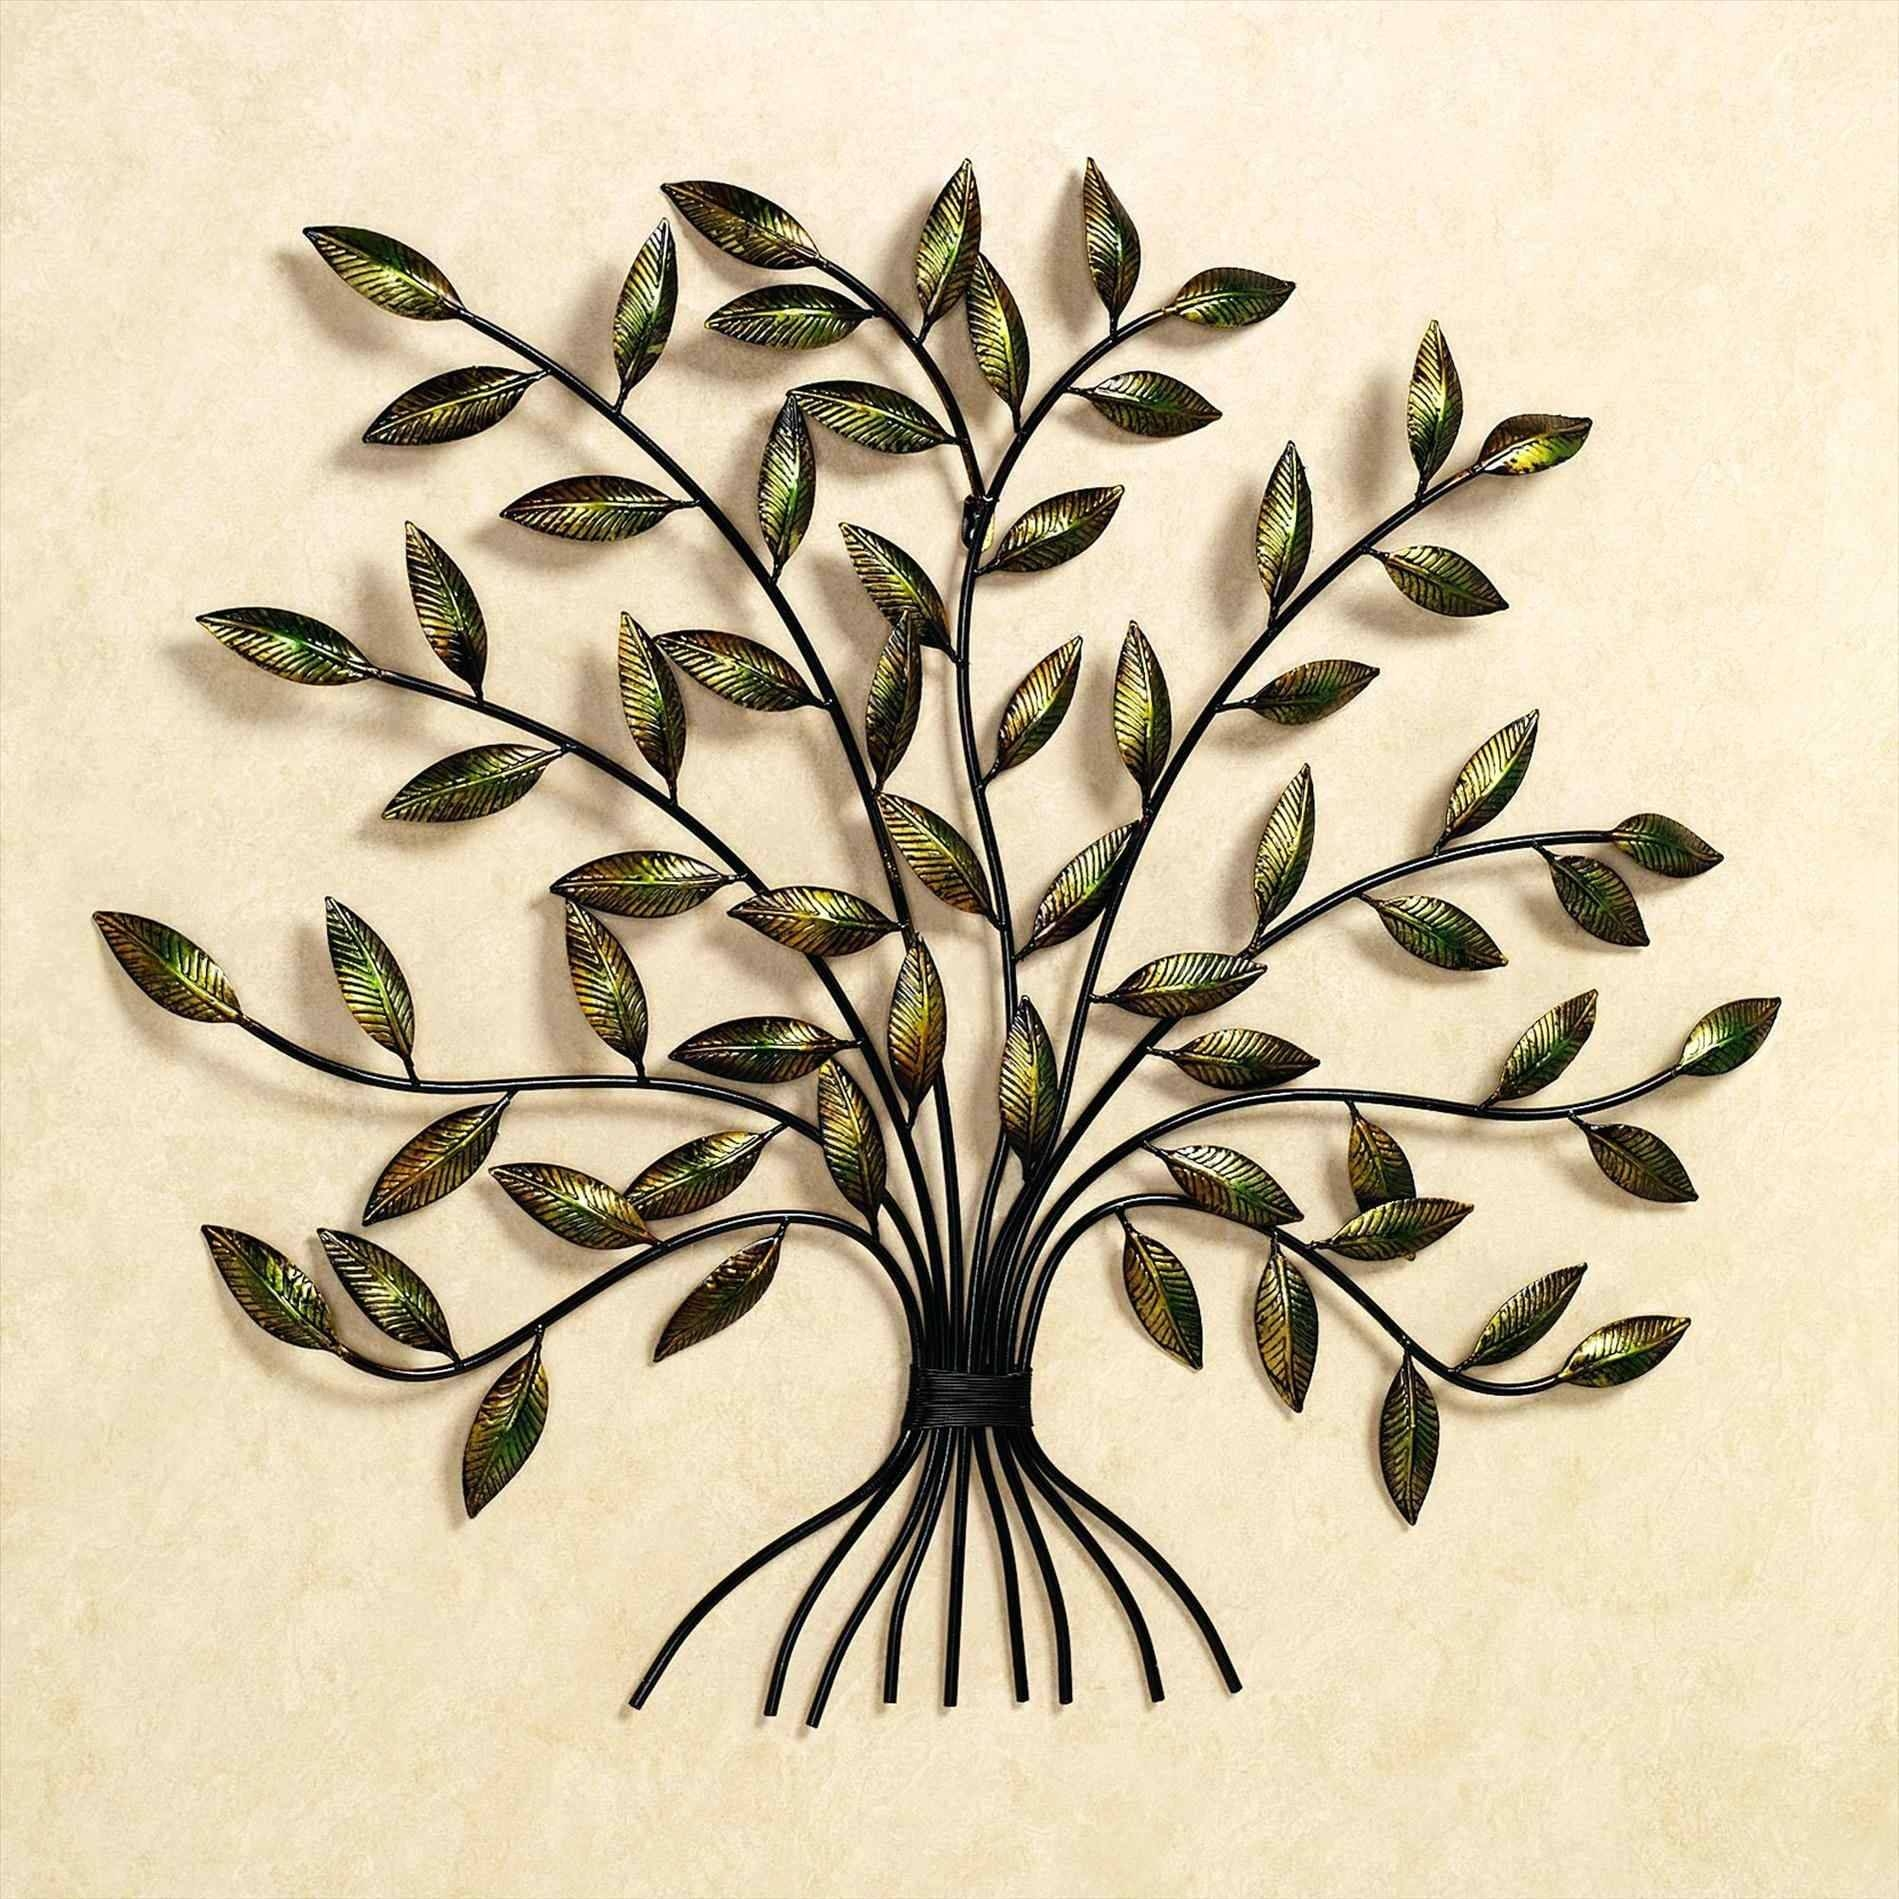 Sculpture Uk Decor Family Wall Red Tree Metal Wall Art Ideas Metal Intended For Most Current Red Tree Metal Wall Art (View 12 of 20)